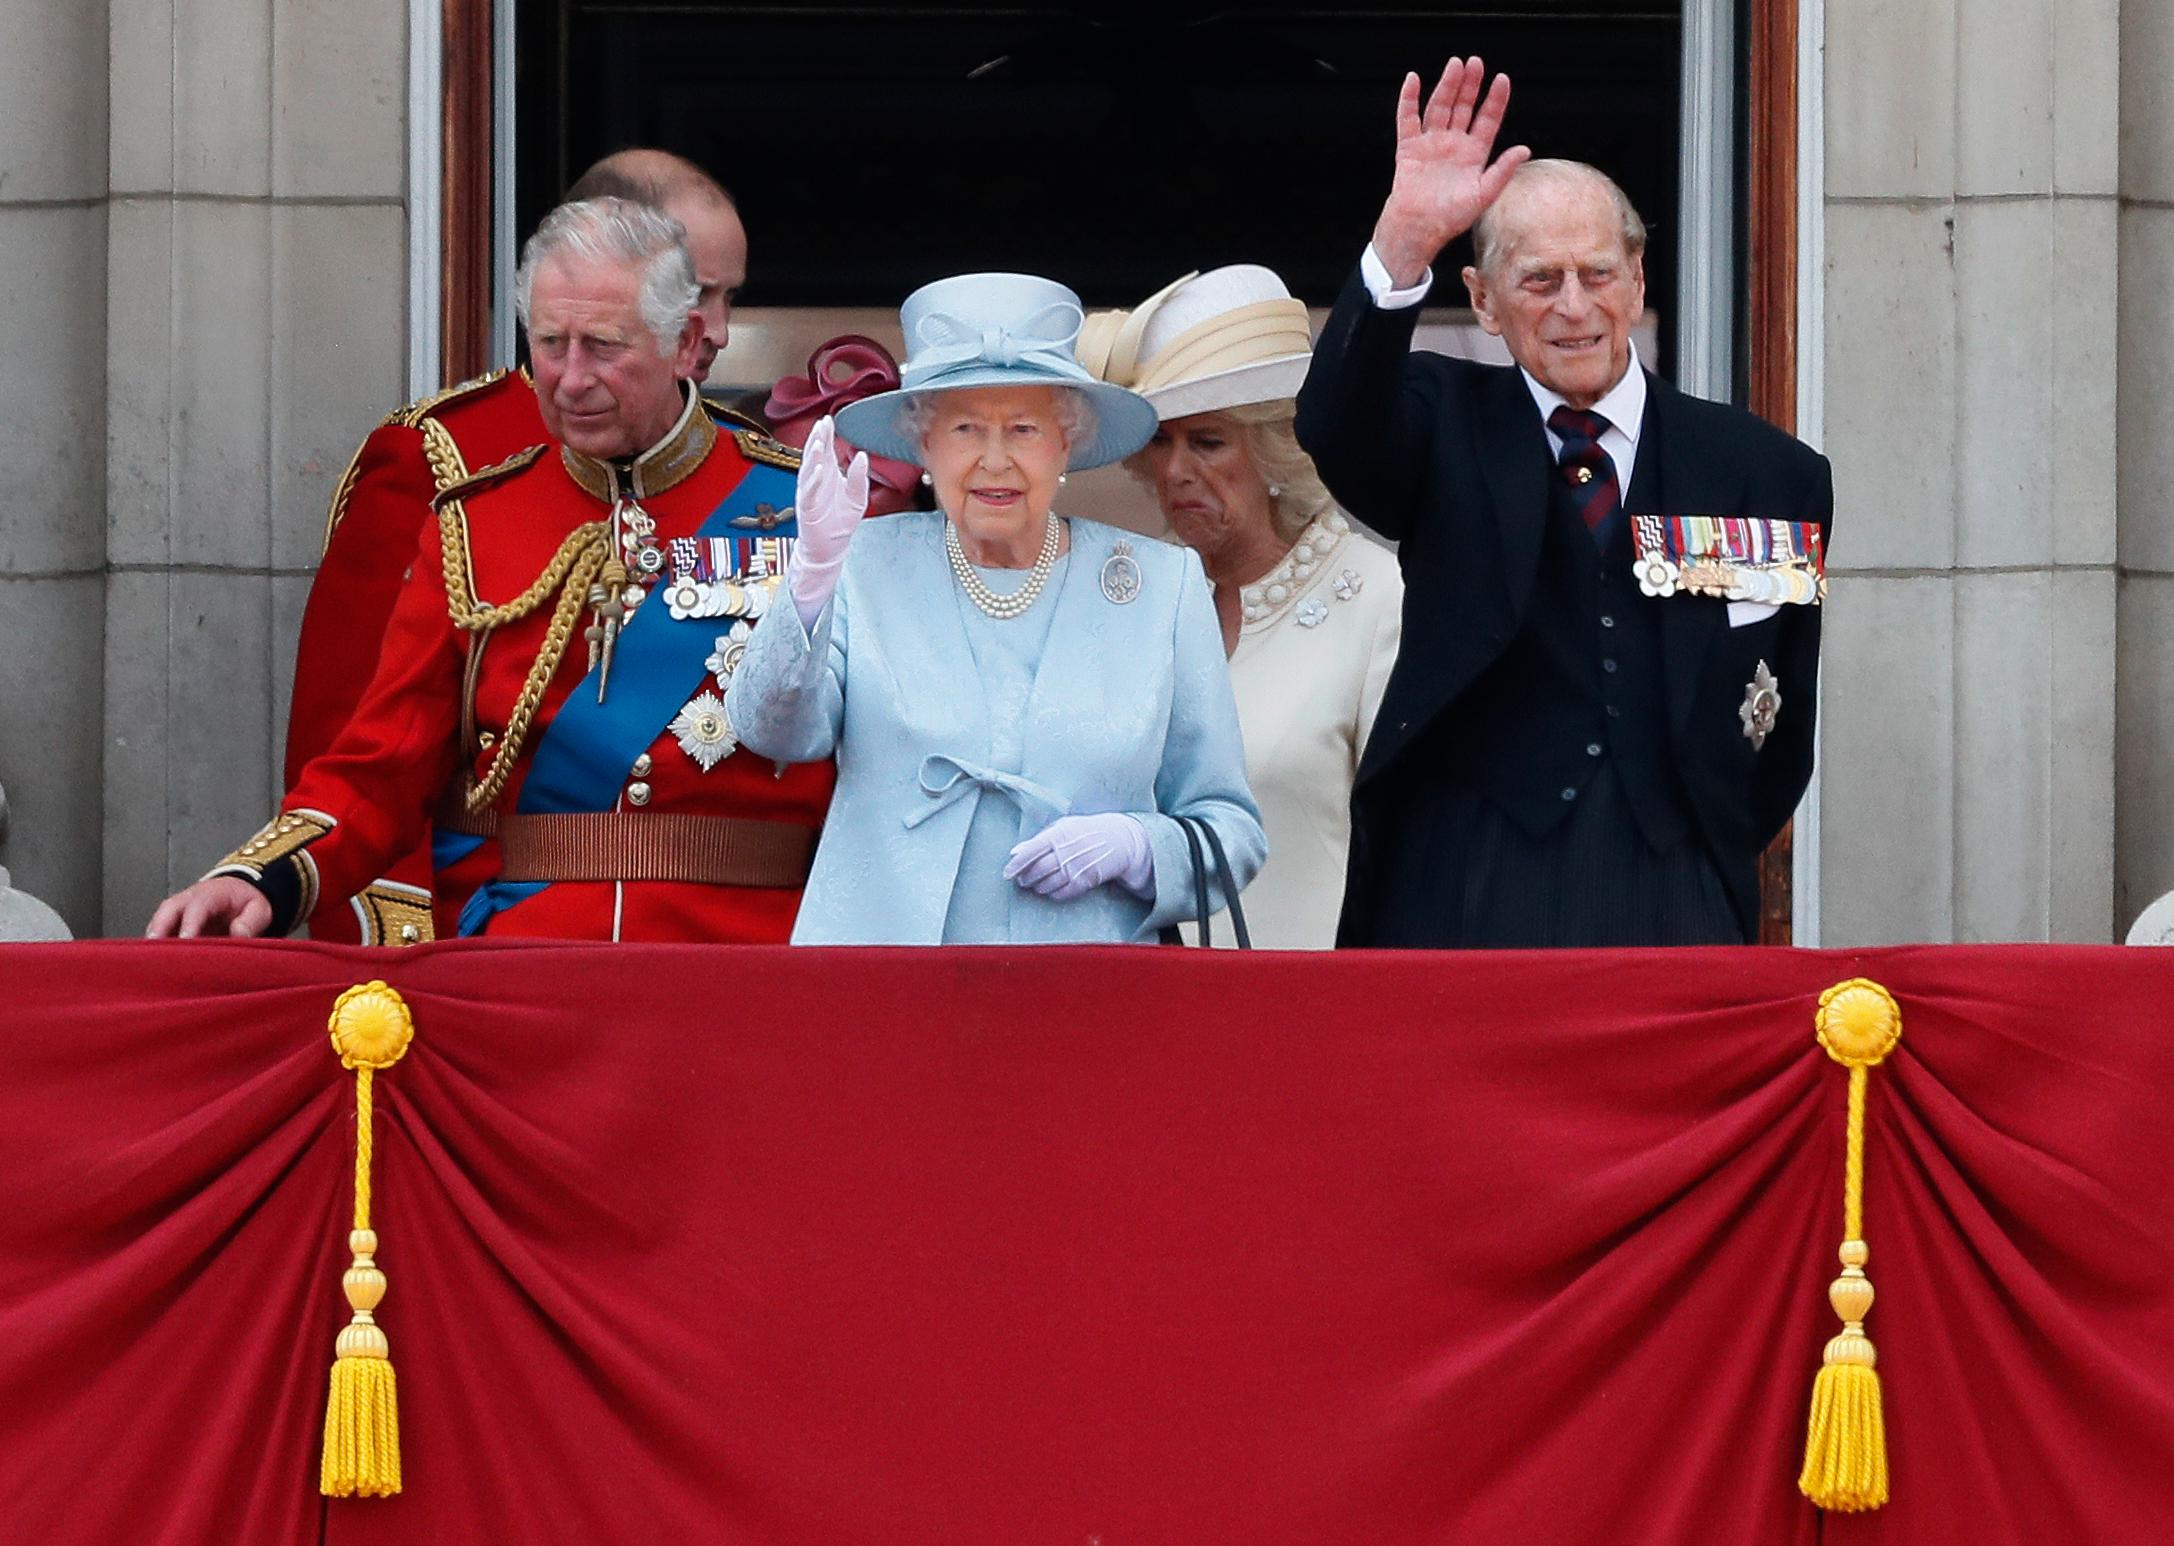 From left, Britain's Prince Charles, Queen Elizabeth II, Prince Philip, the Duke of Edinburgh appear on the balcony of Buckingham Palace, after attending the annual Trooping the Colour Ceremony in London, Saturday, June 17, 2017. (AP Photo/Kirsty Wigglesworth)